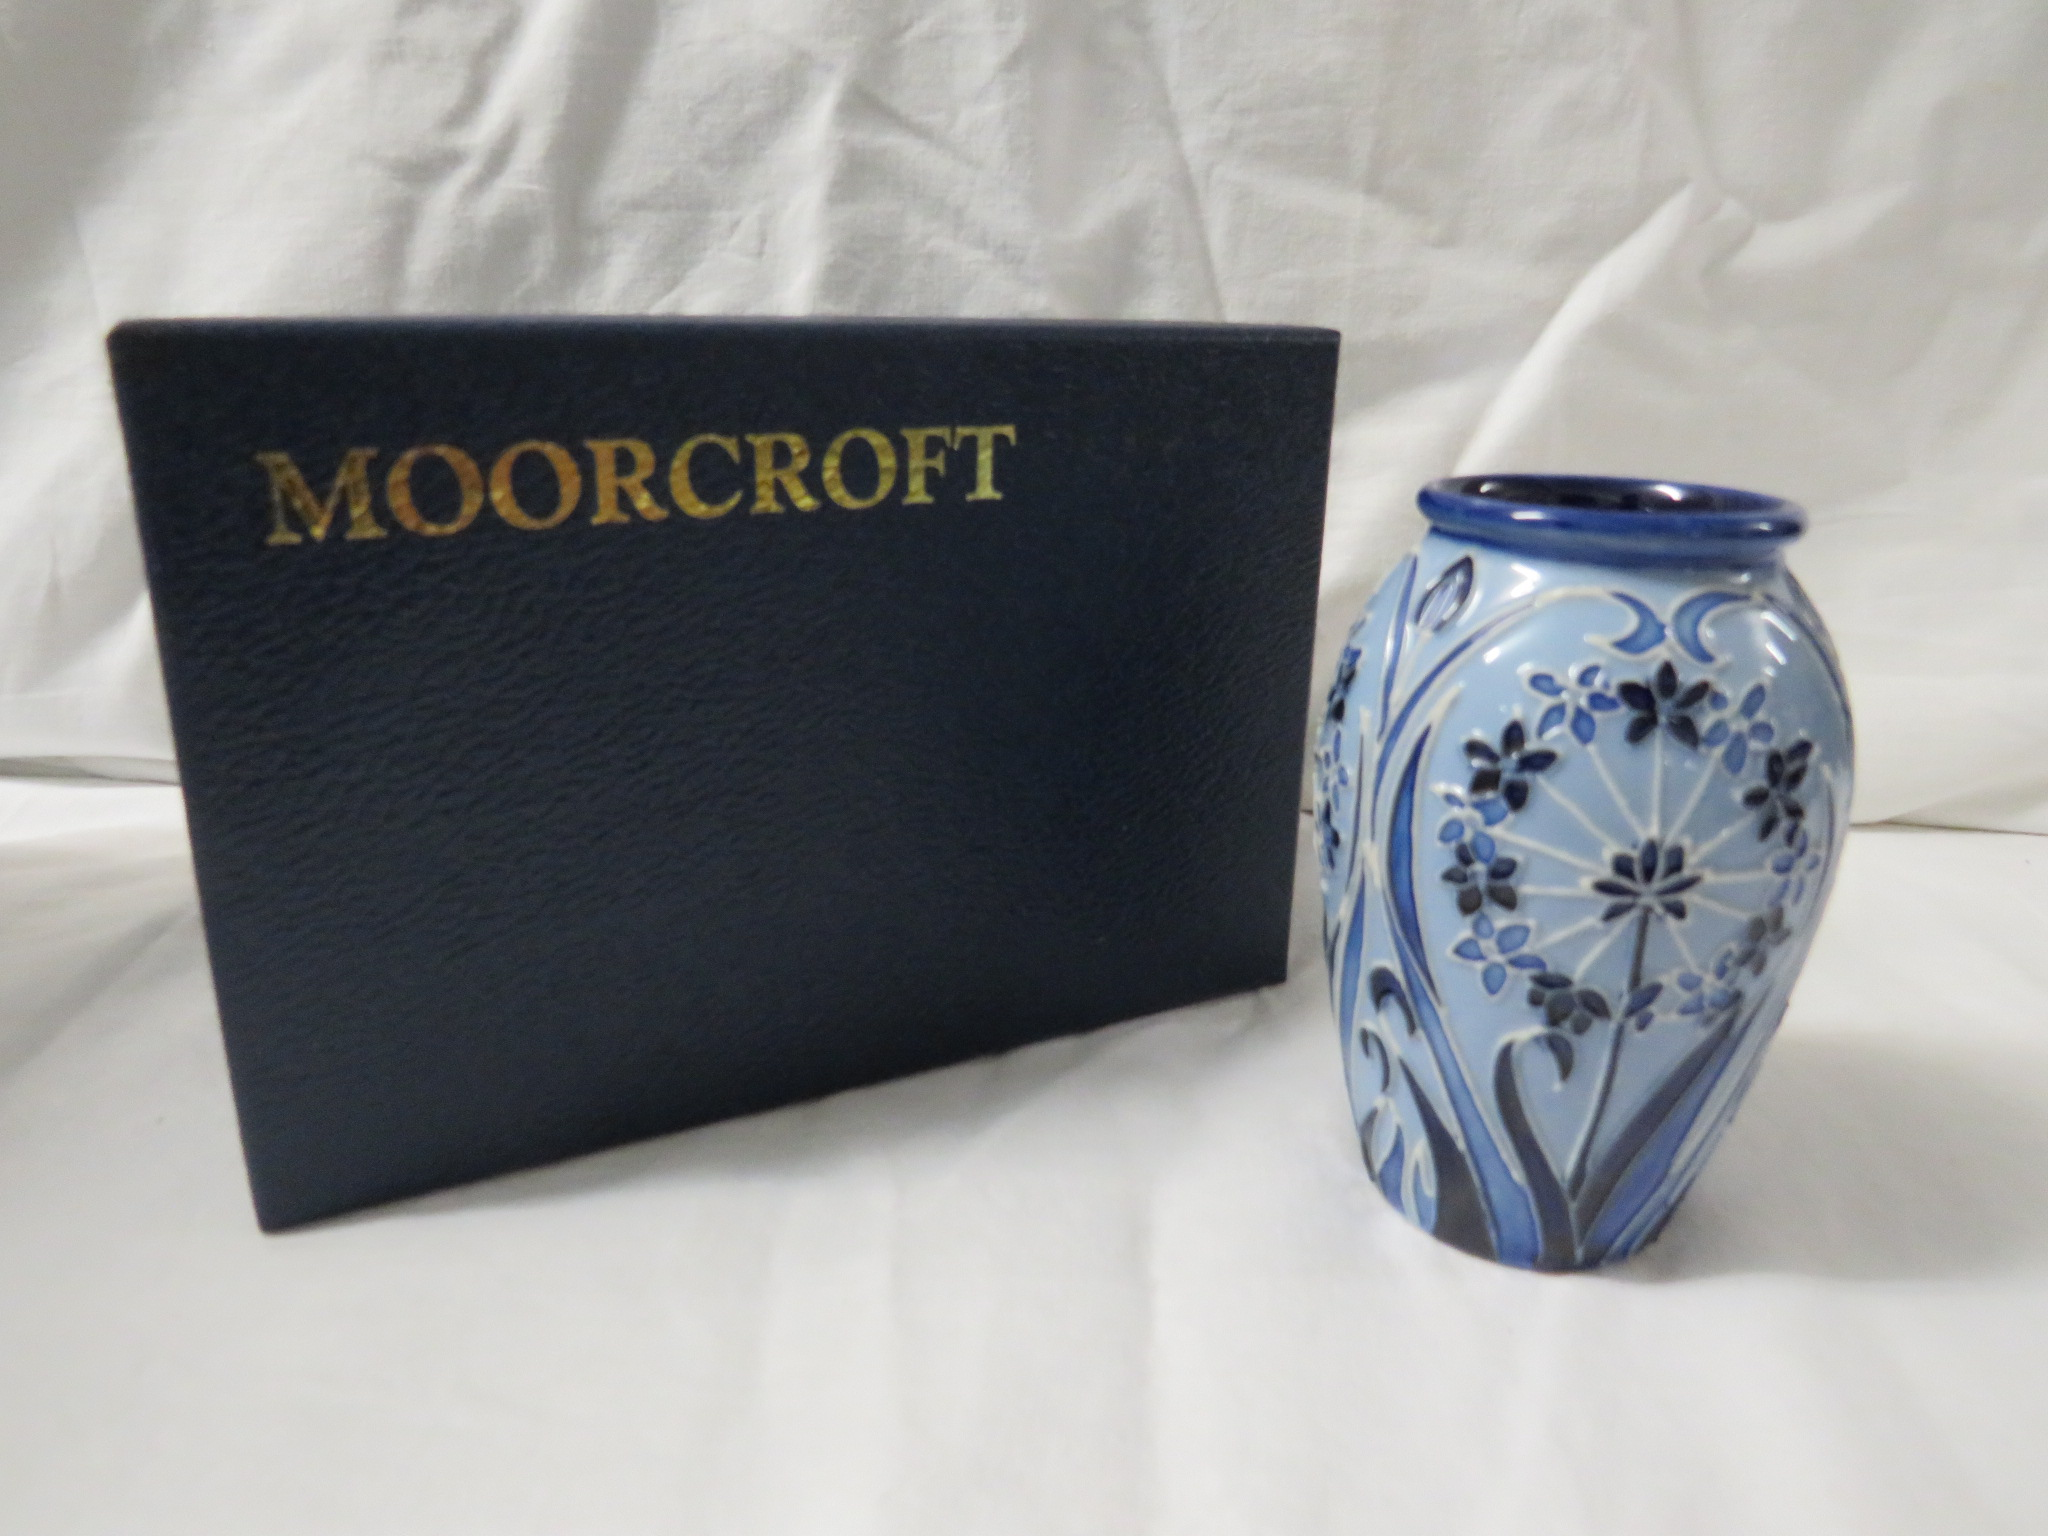 Lot 12 - Moorcroft pottery ovoid vase Leila in the style of Macintyre florian ware, pale blue ground, tube